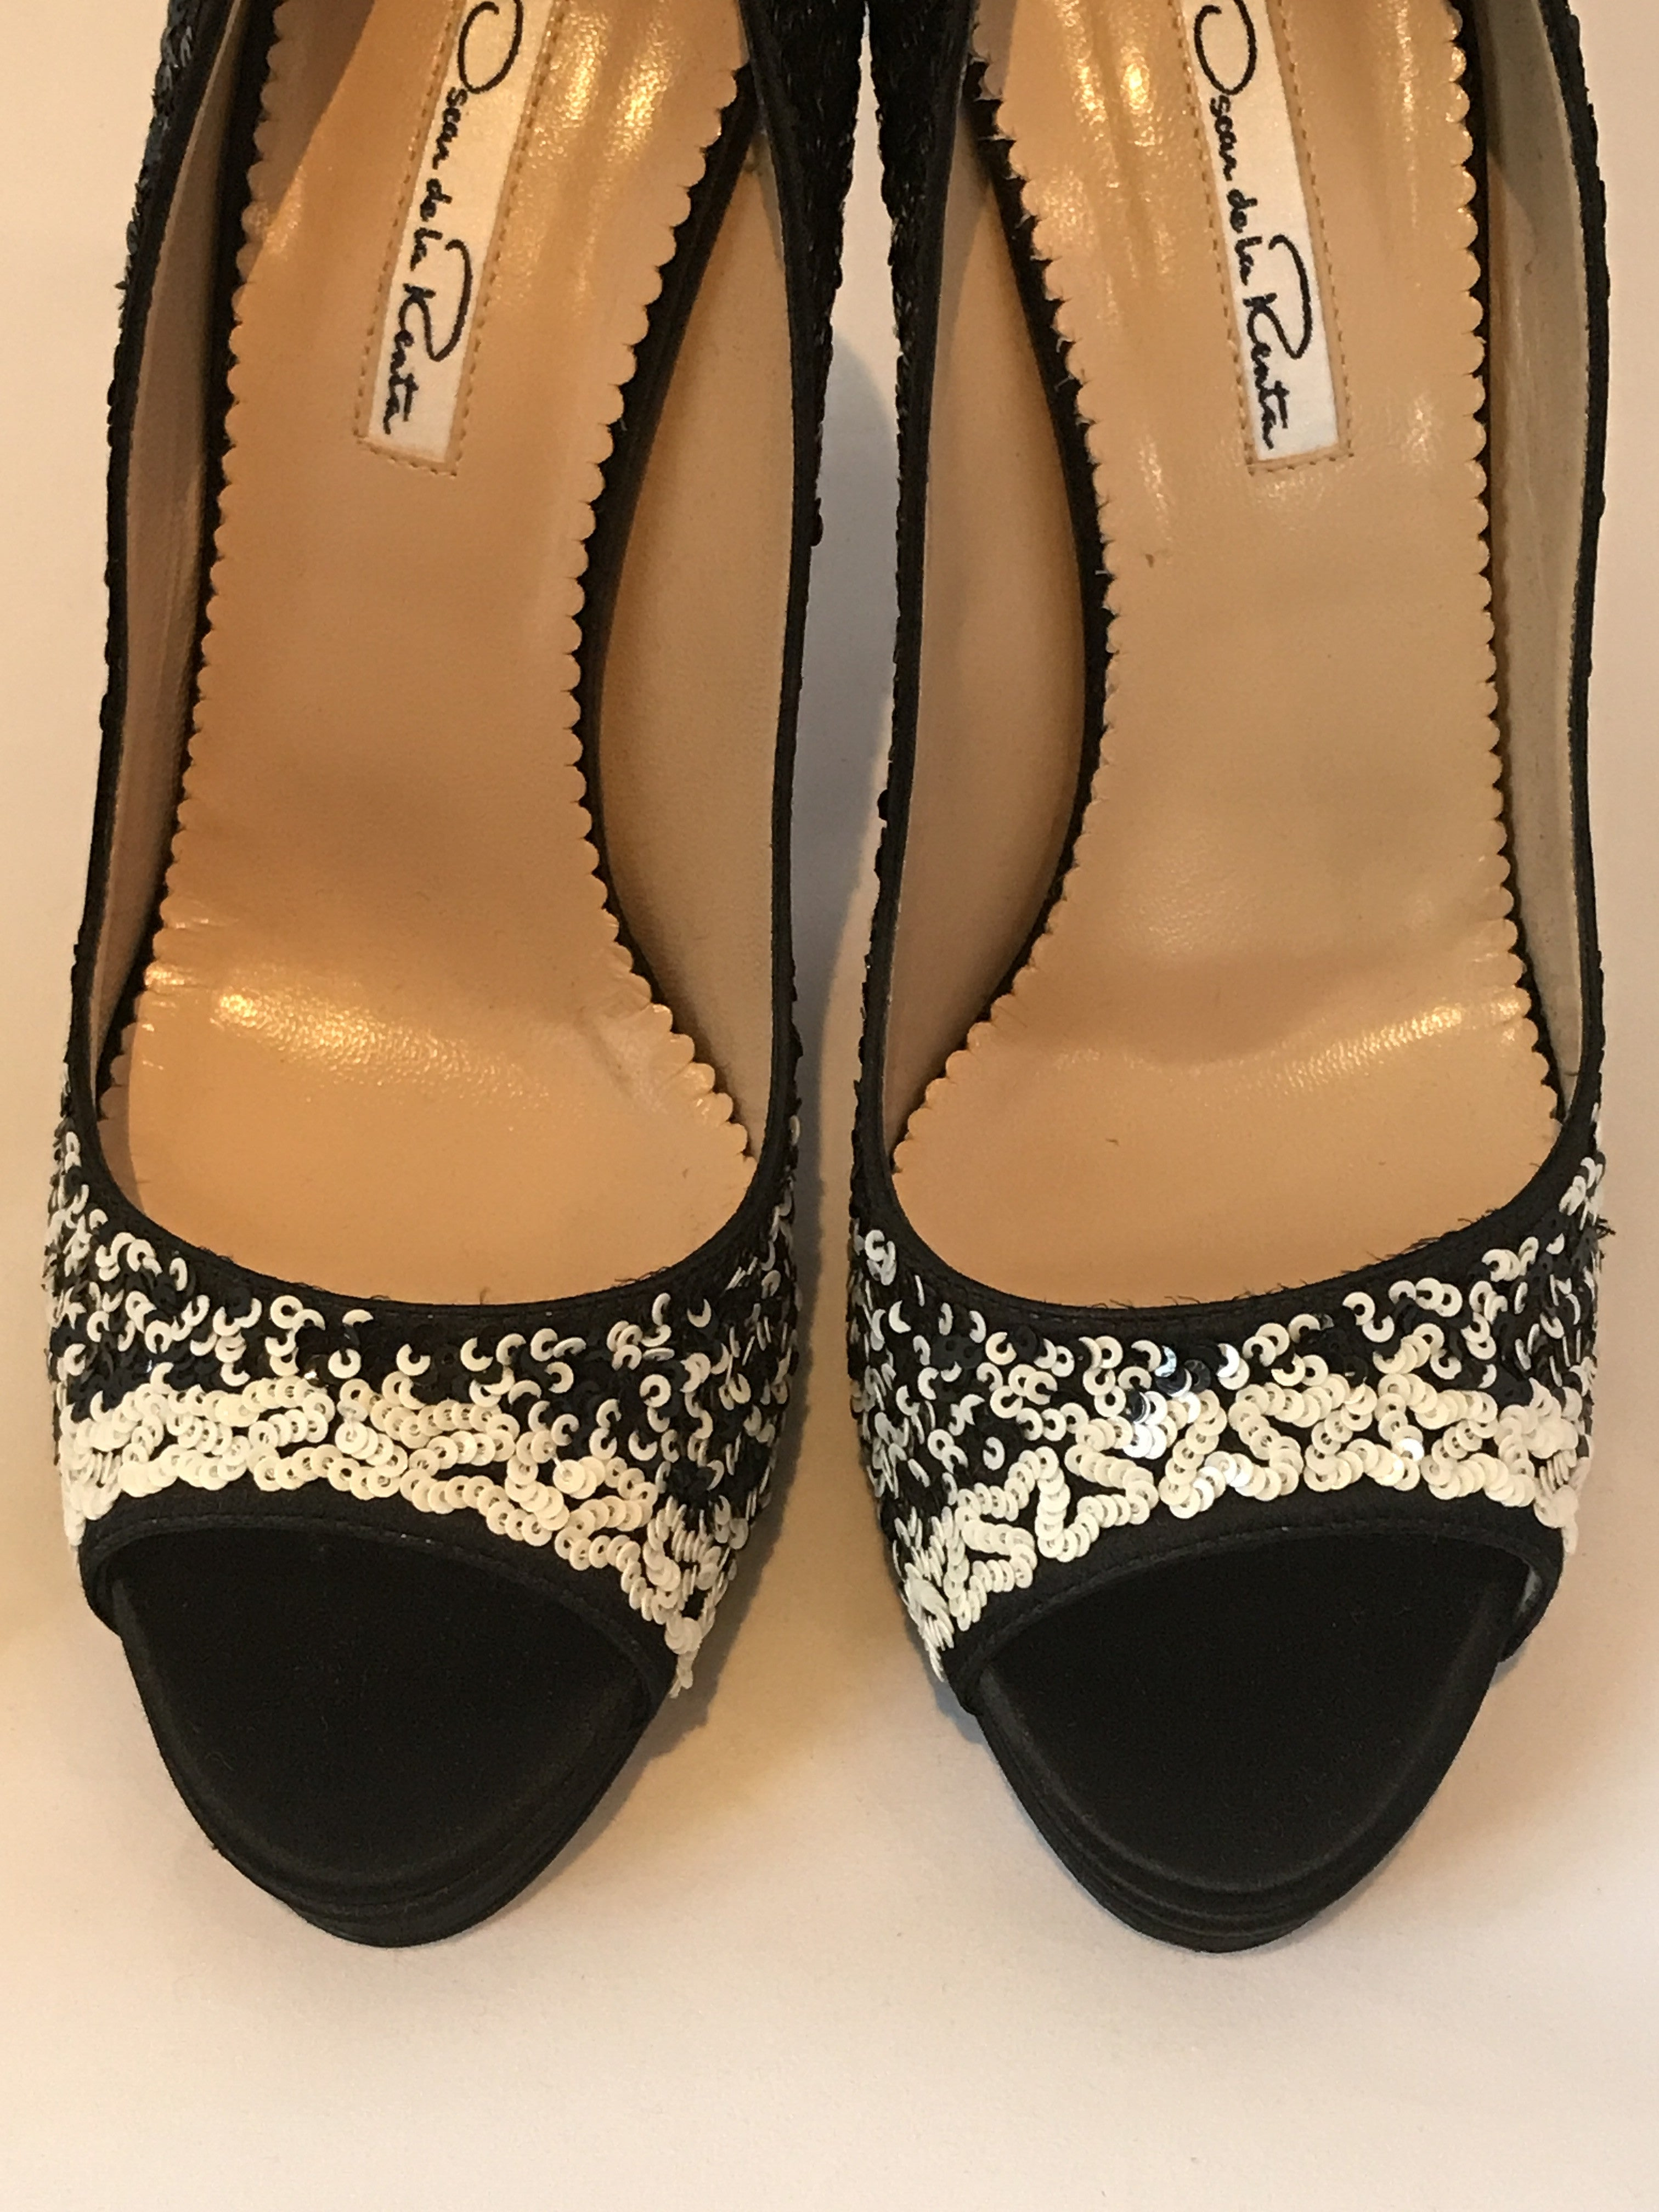 Oscar de la Renta Black Satin Sequin Pump<br> Size 39